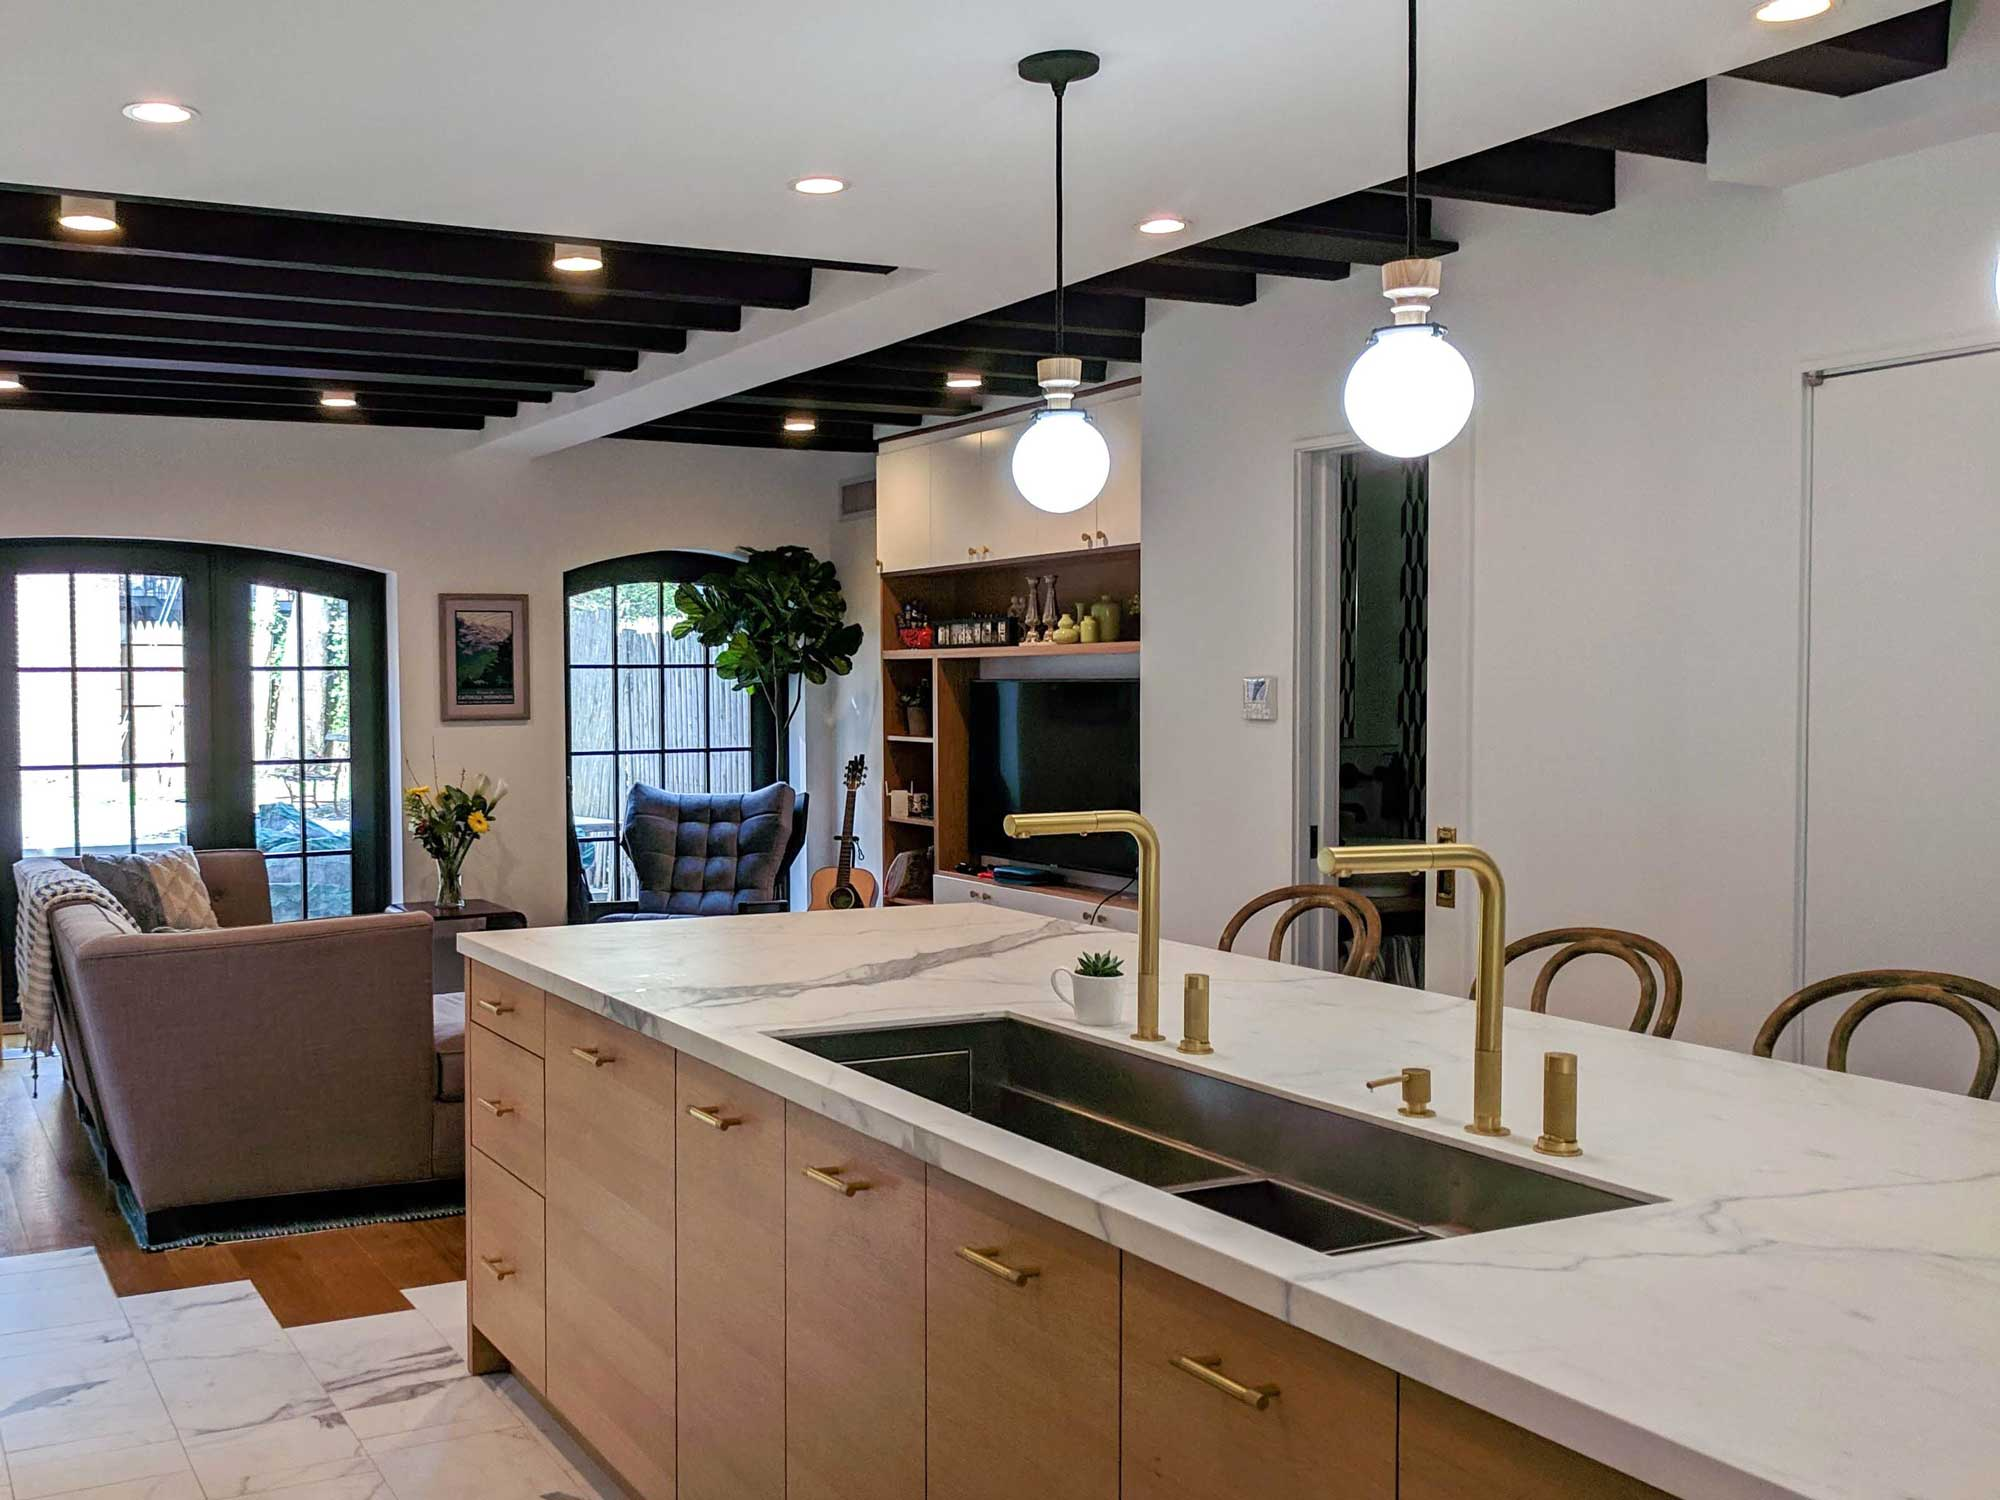 Kitchen Island with sink and pendant lighting